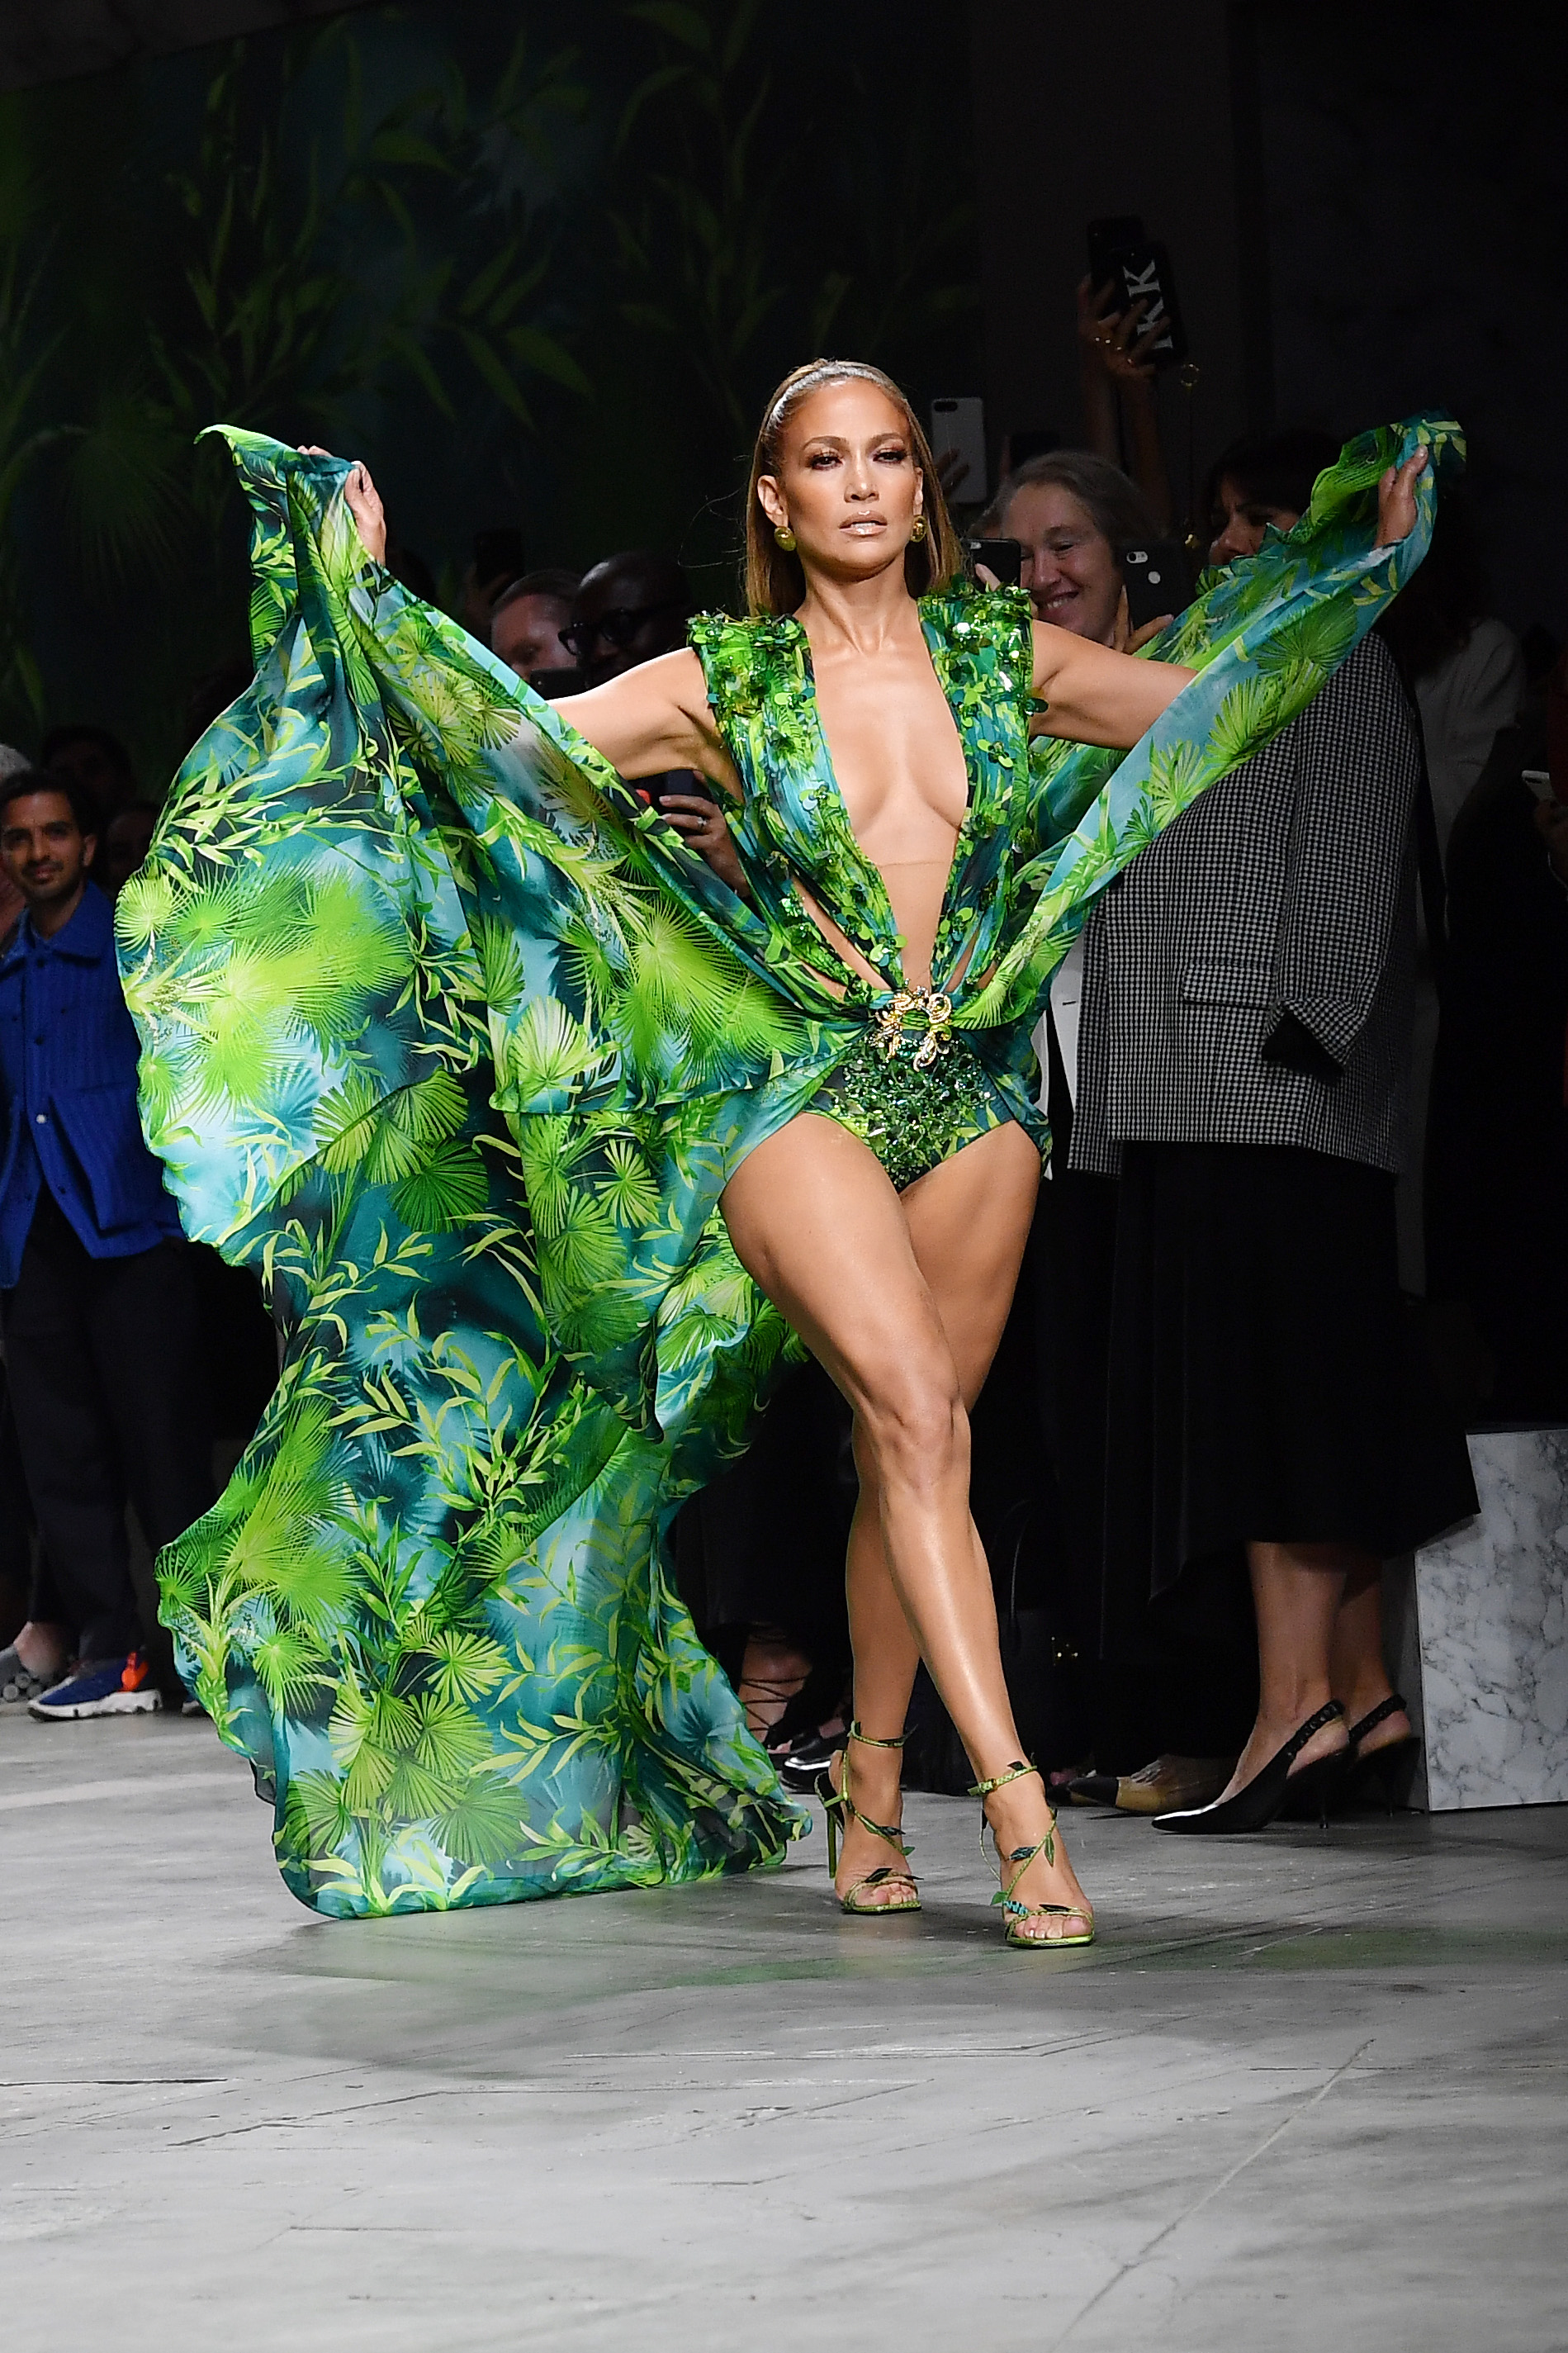 MILAN, ITALY - SEPTEMBER 20: Jennifer Lopez walks the runway at the Versace show during the Milan Fashion Week Spring/Summer 2020 on September 20, 2019 in Milan, Italy. (Photo by Jacopo Raule/Getty Images)